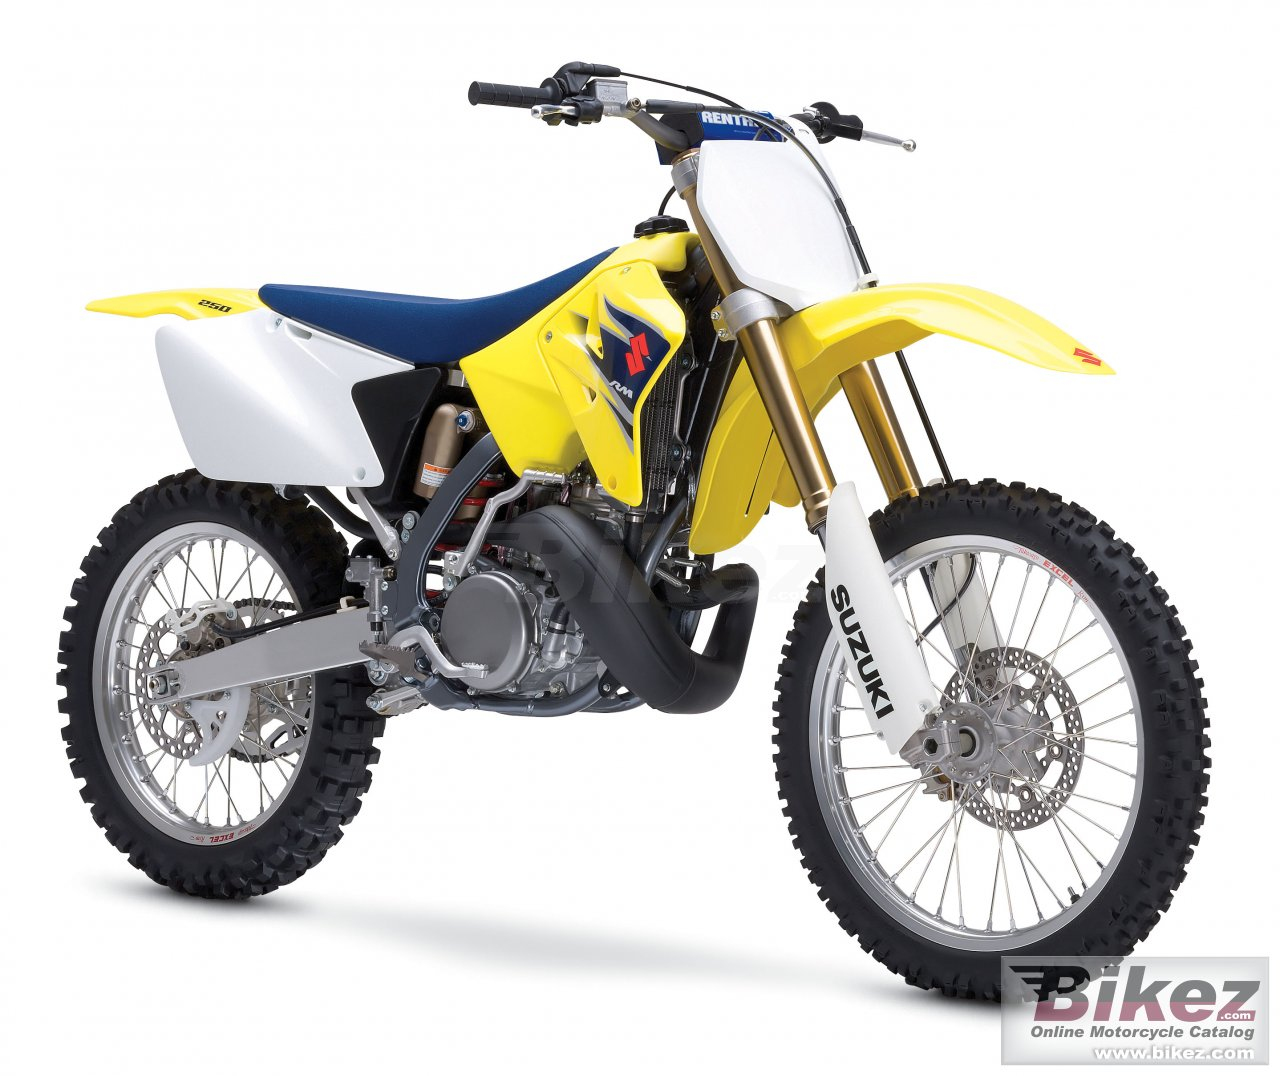 Big Suzuki rm 250 picture and wallpaper from Bikez.com